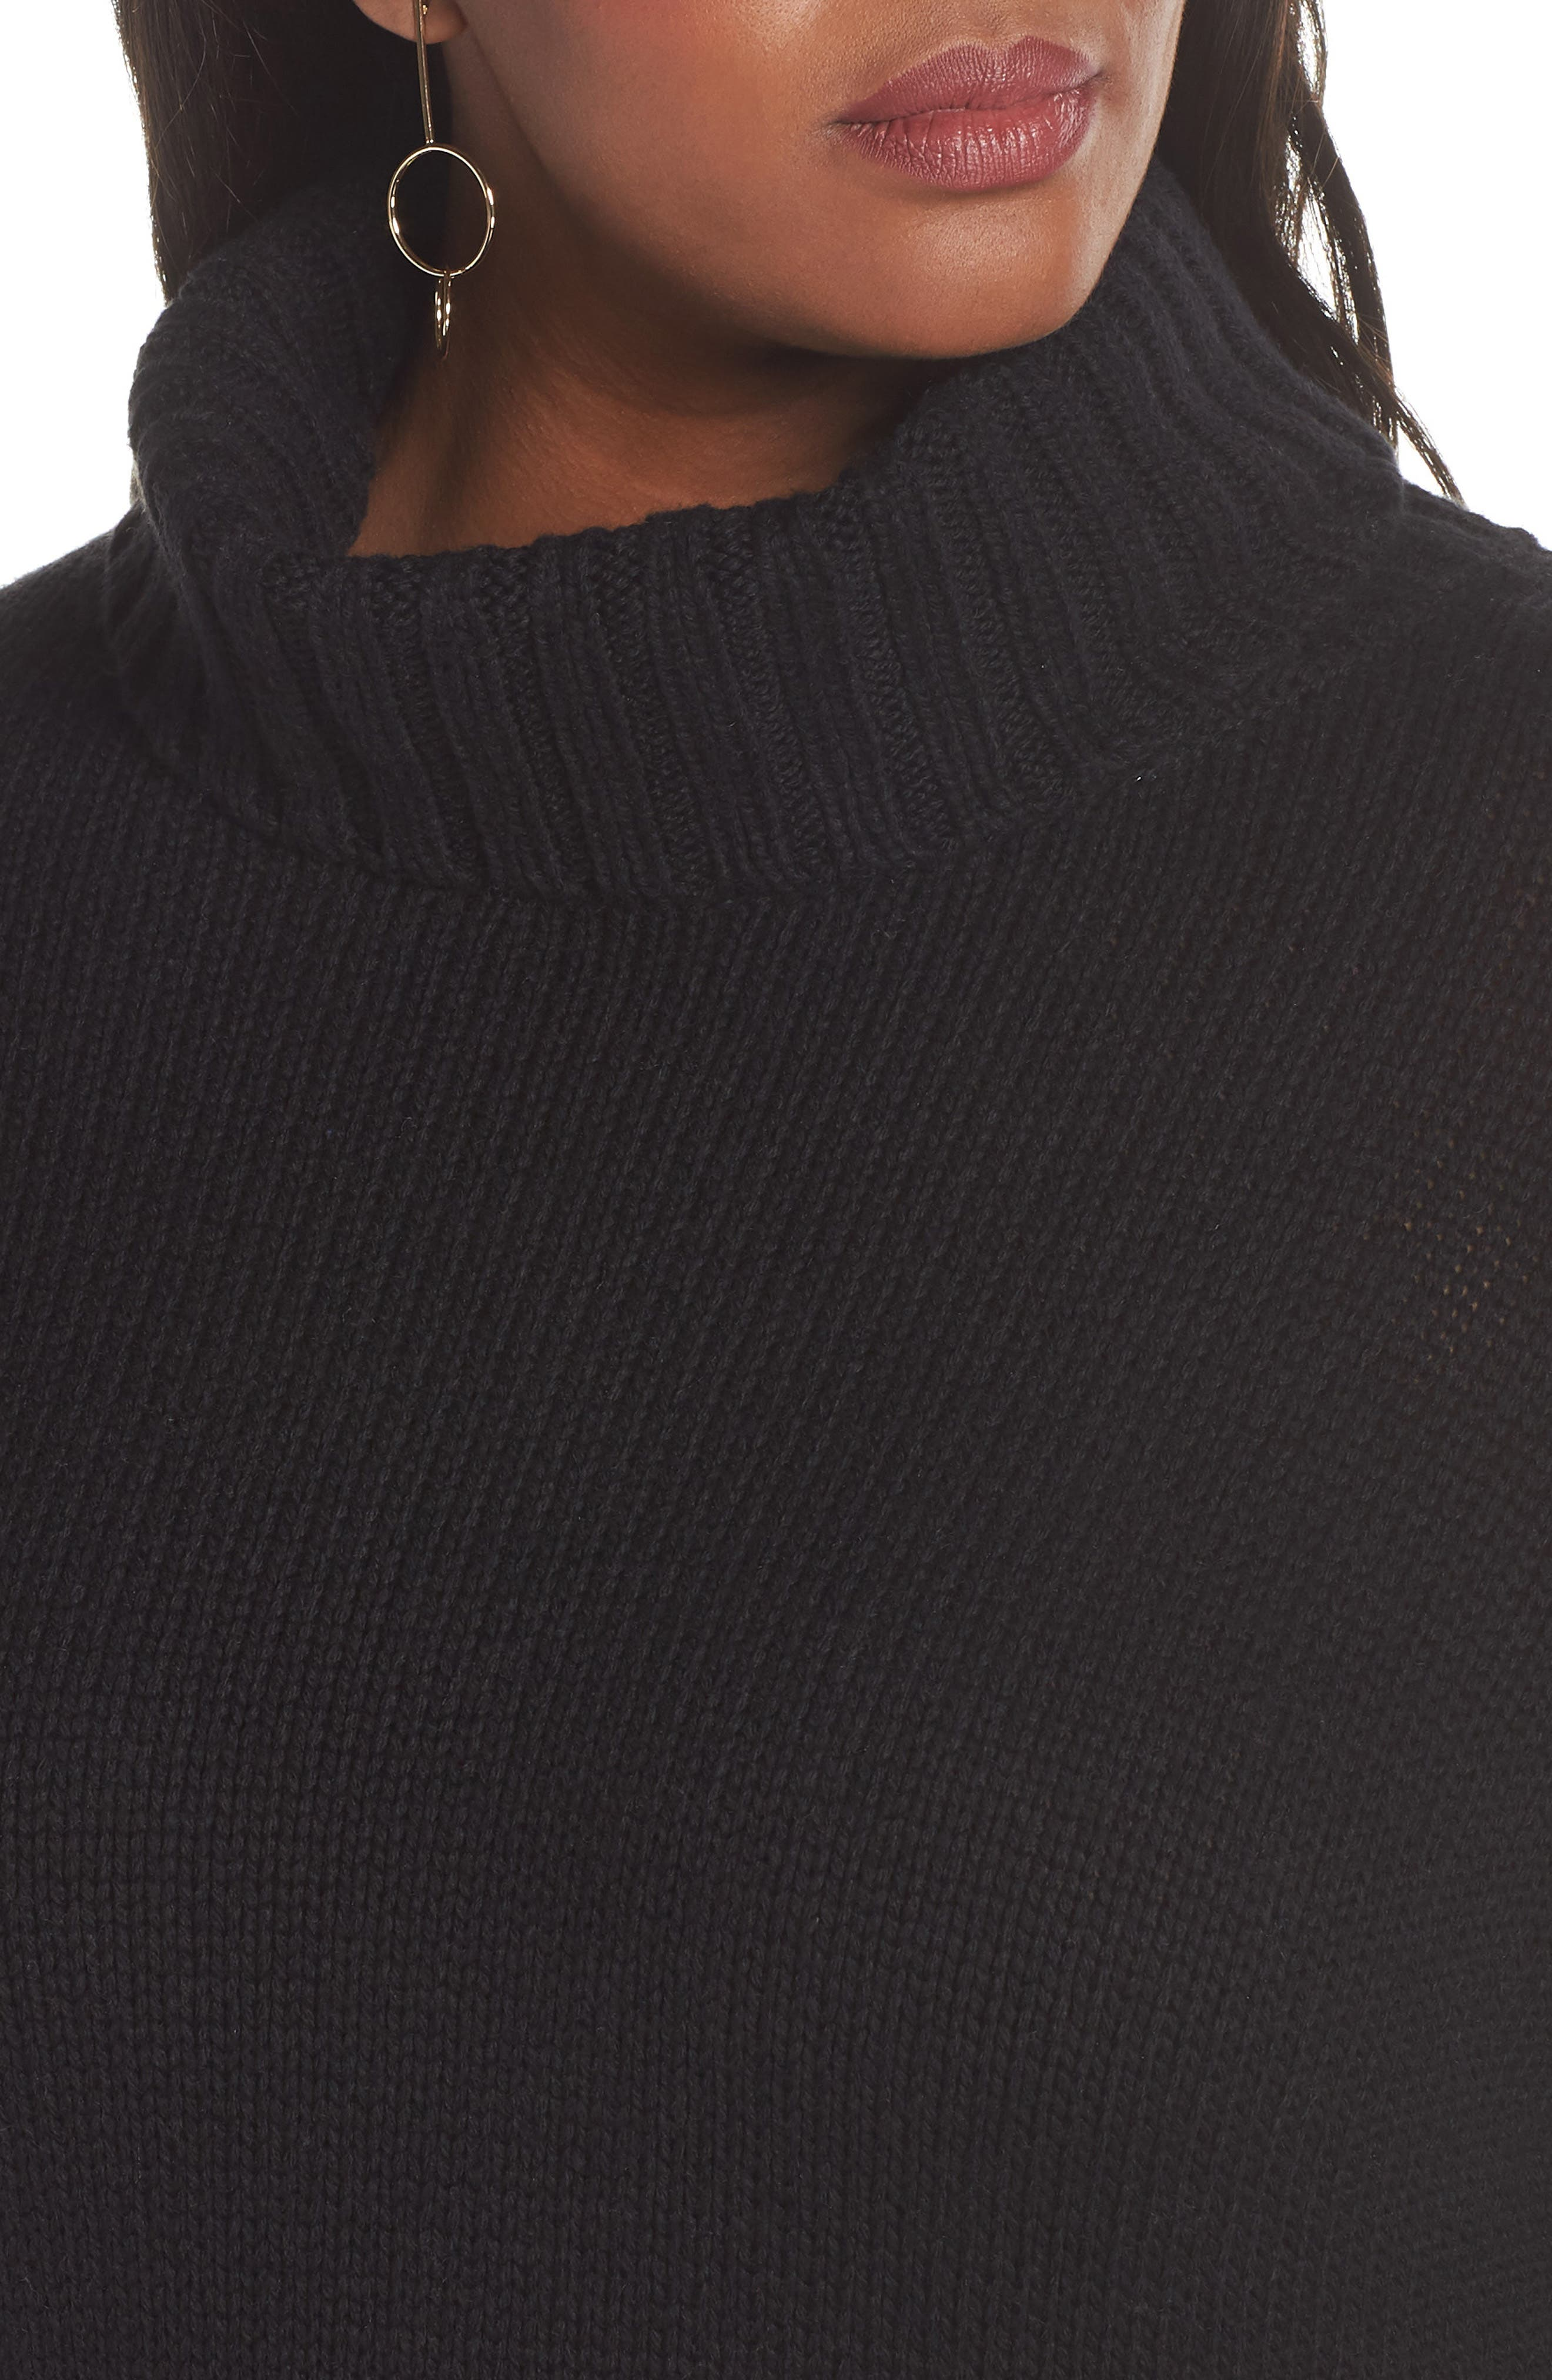 High/Low Turtleneck Sweater,                             Alternate thumbnail 4, color,                             BLACK